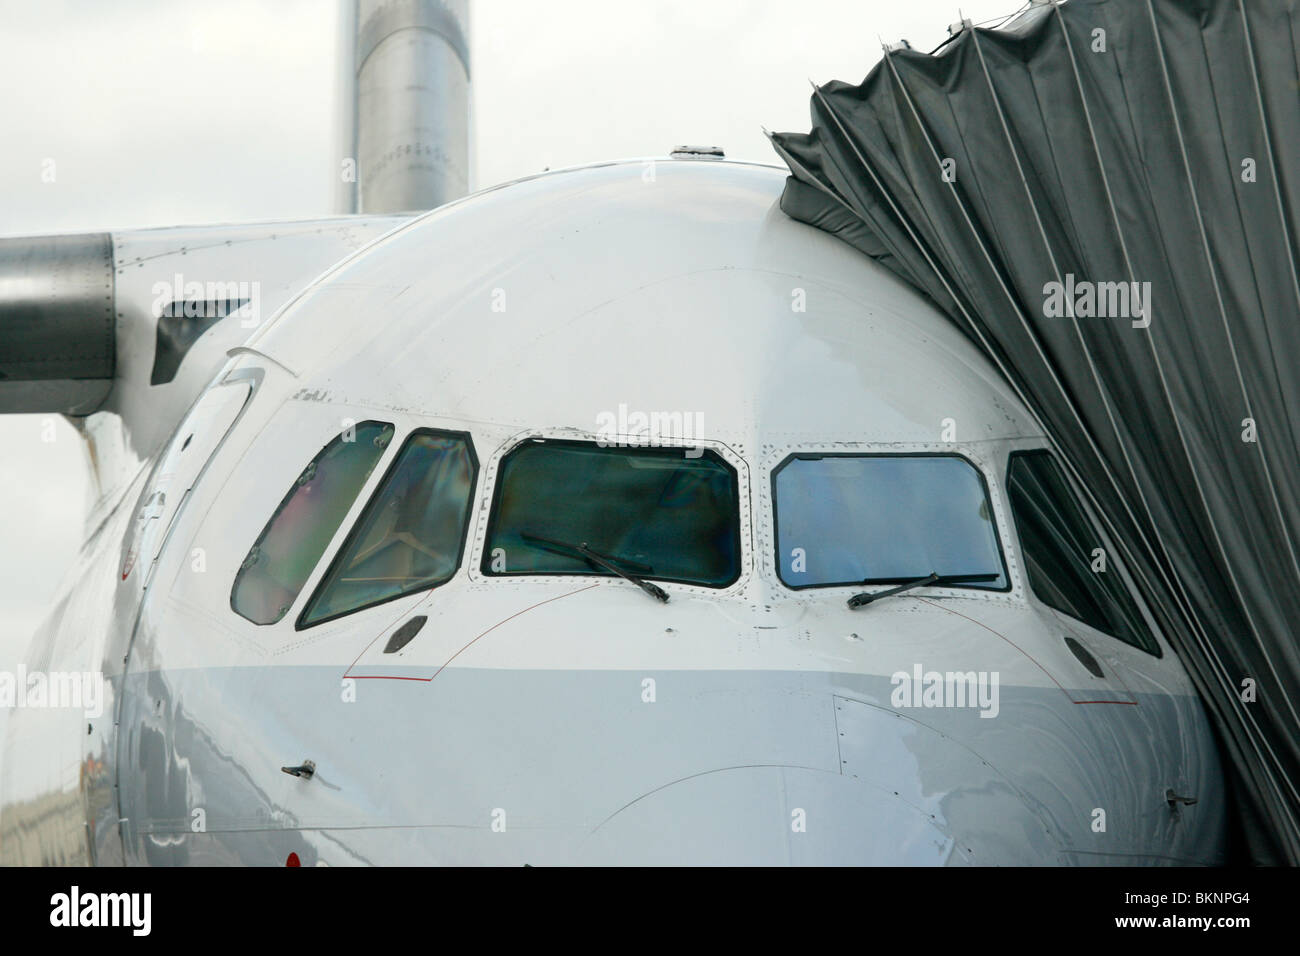 Frontal view of an AVRO passenger plane ready to receive passengers with the covered gangway attached to the aircraft - Stock Image